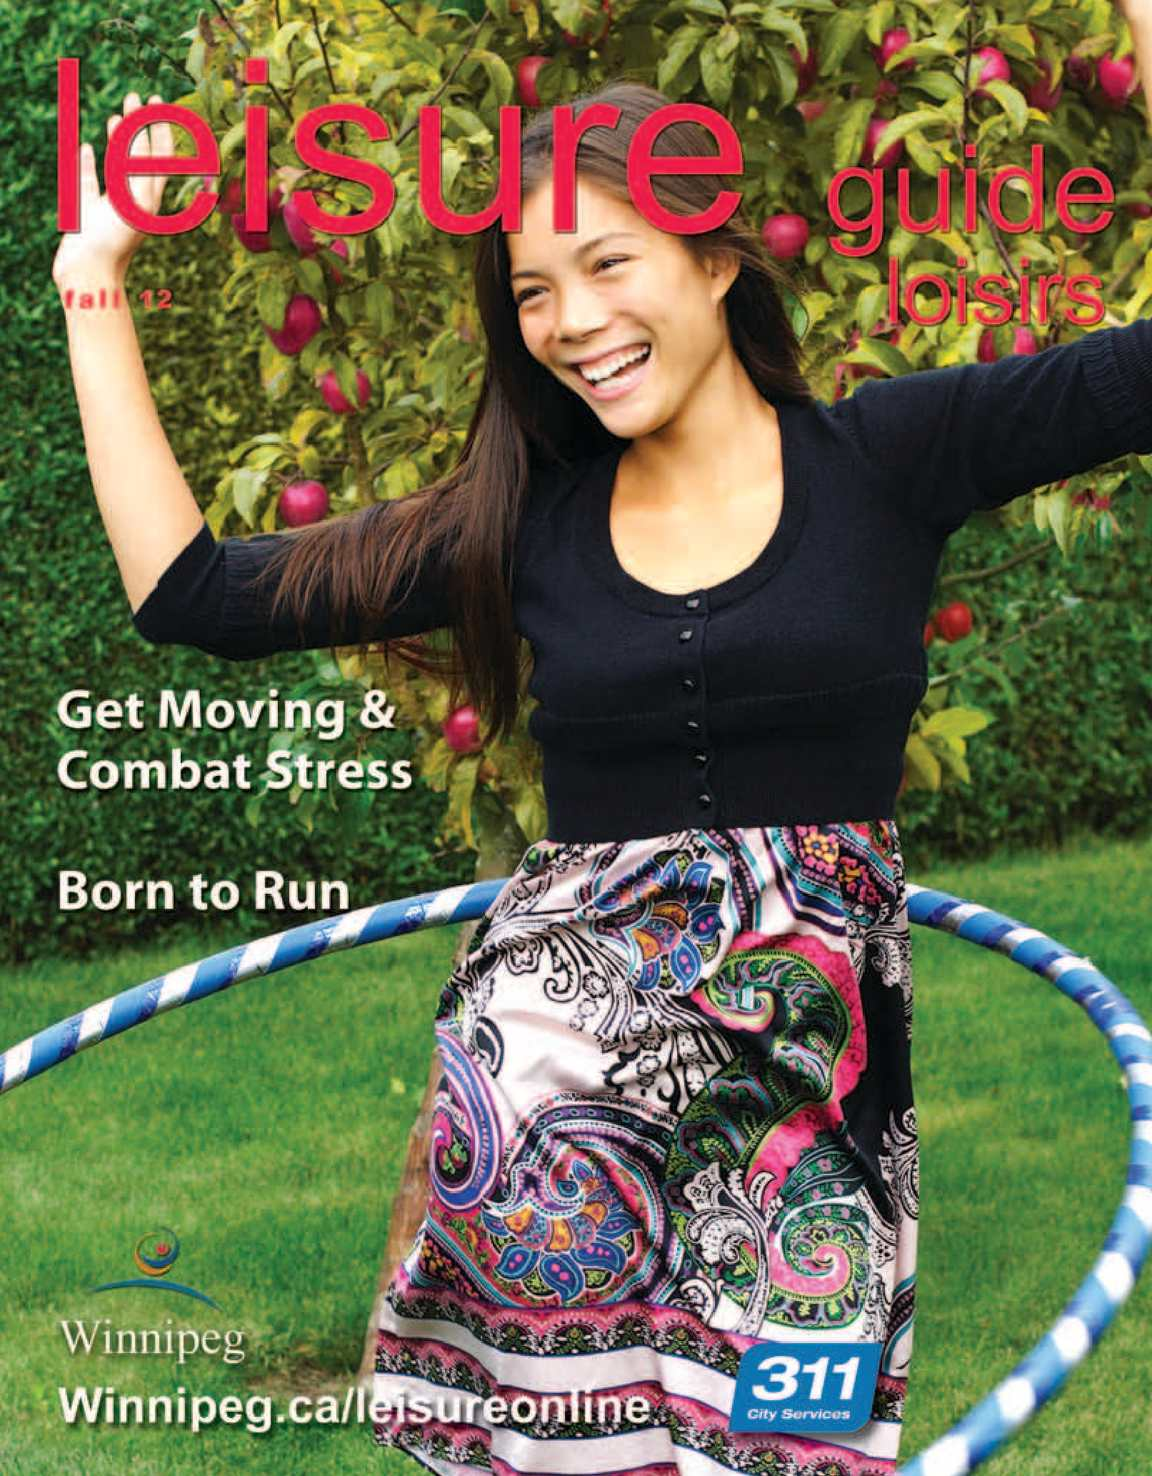 Get ready: Registration for Winnipeg's Leisure Guide ...